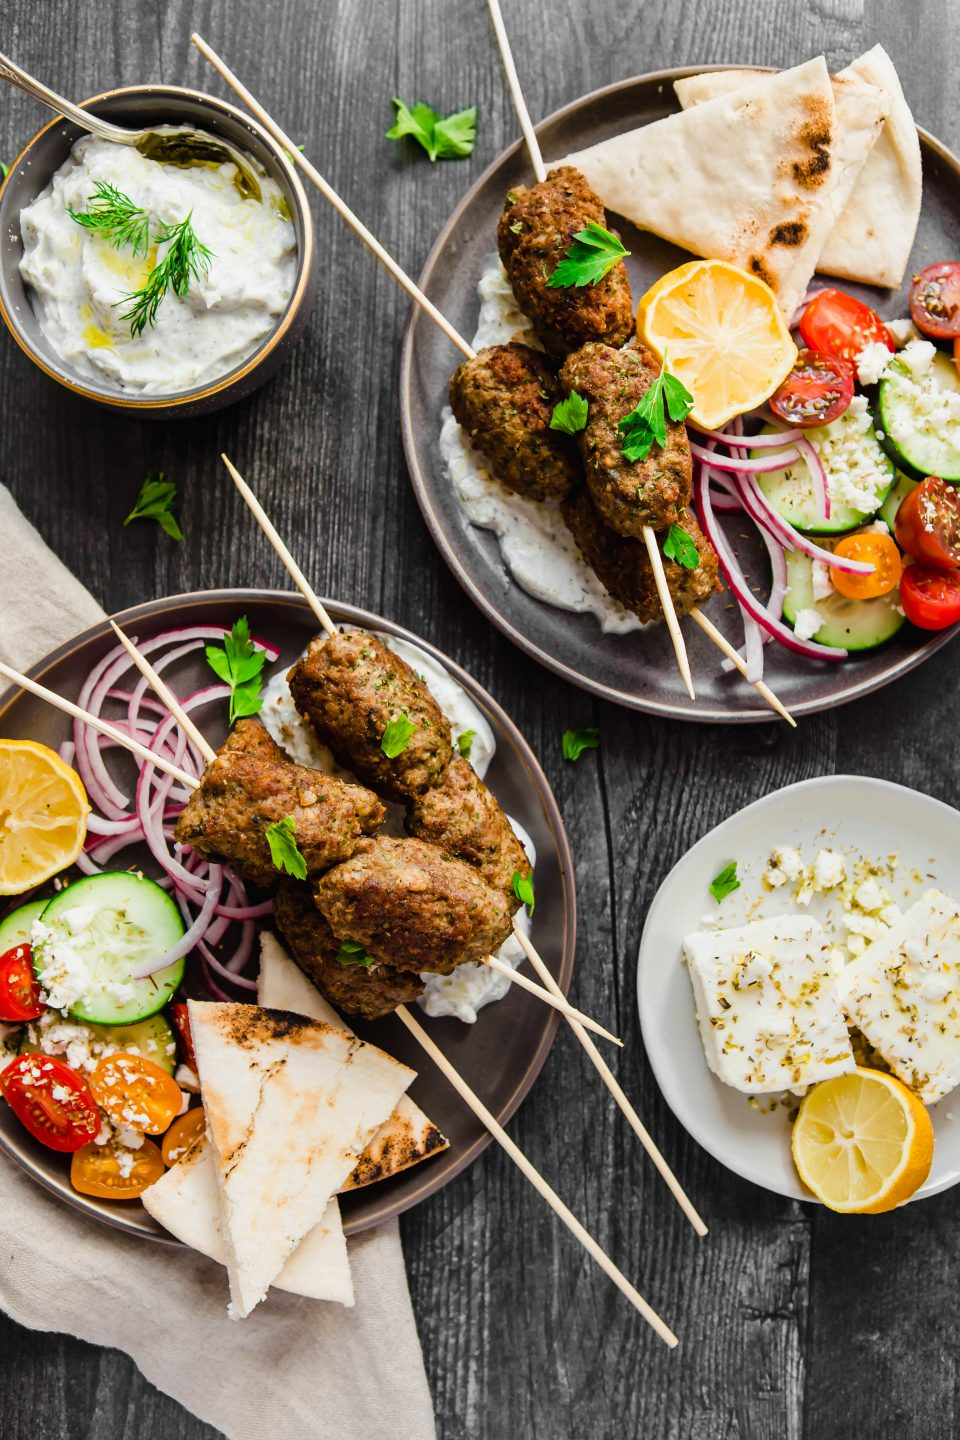 An overhead shot of two dark gray plates on a dark background. There are gluten-free greek lamb meatballs on wooden skewers on each plate. Around the skewers are chopped tomatoes, cucumbers, feta cheese, pita bread and lemons.